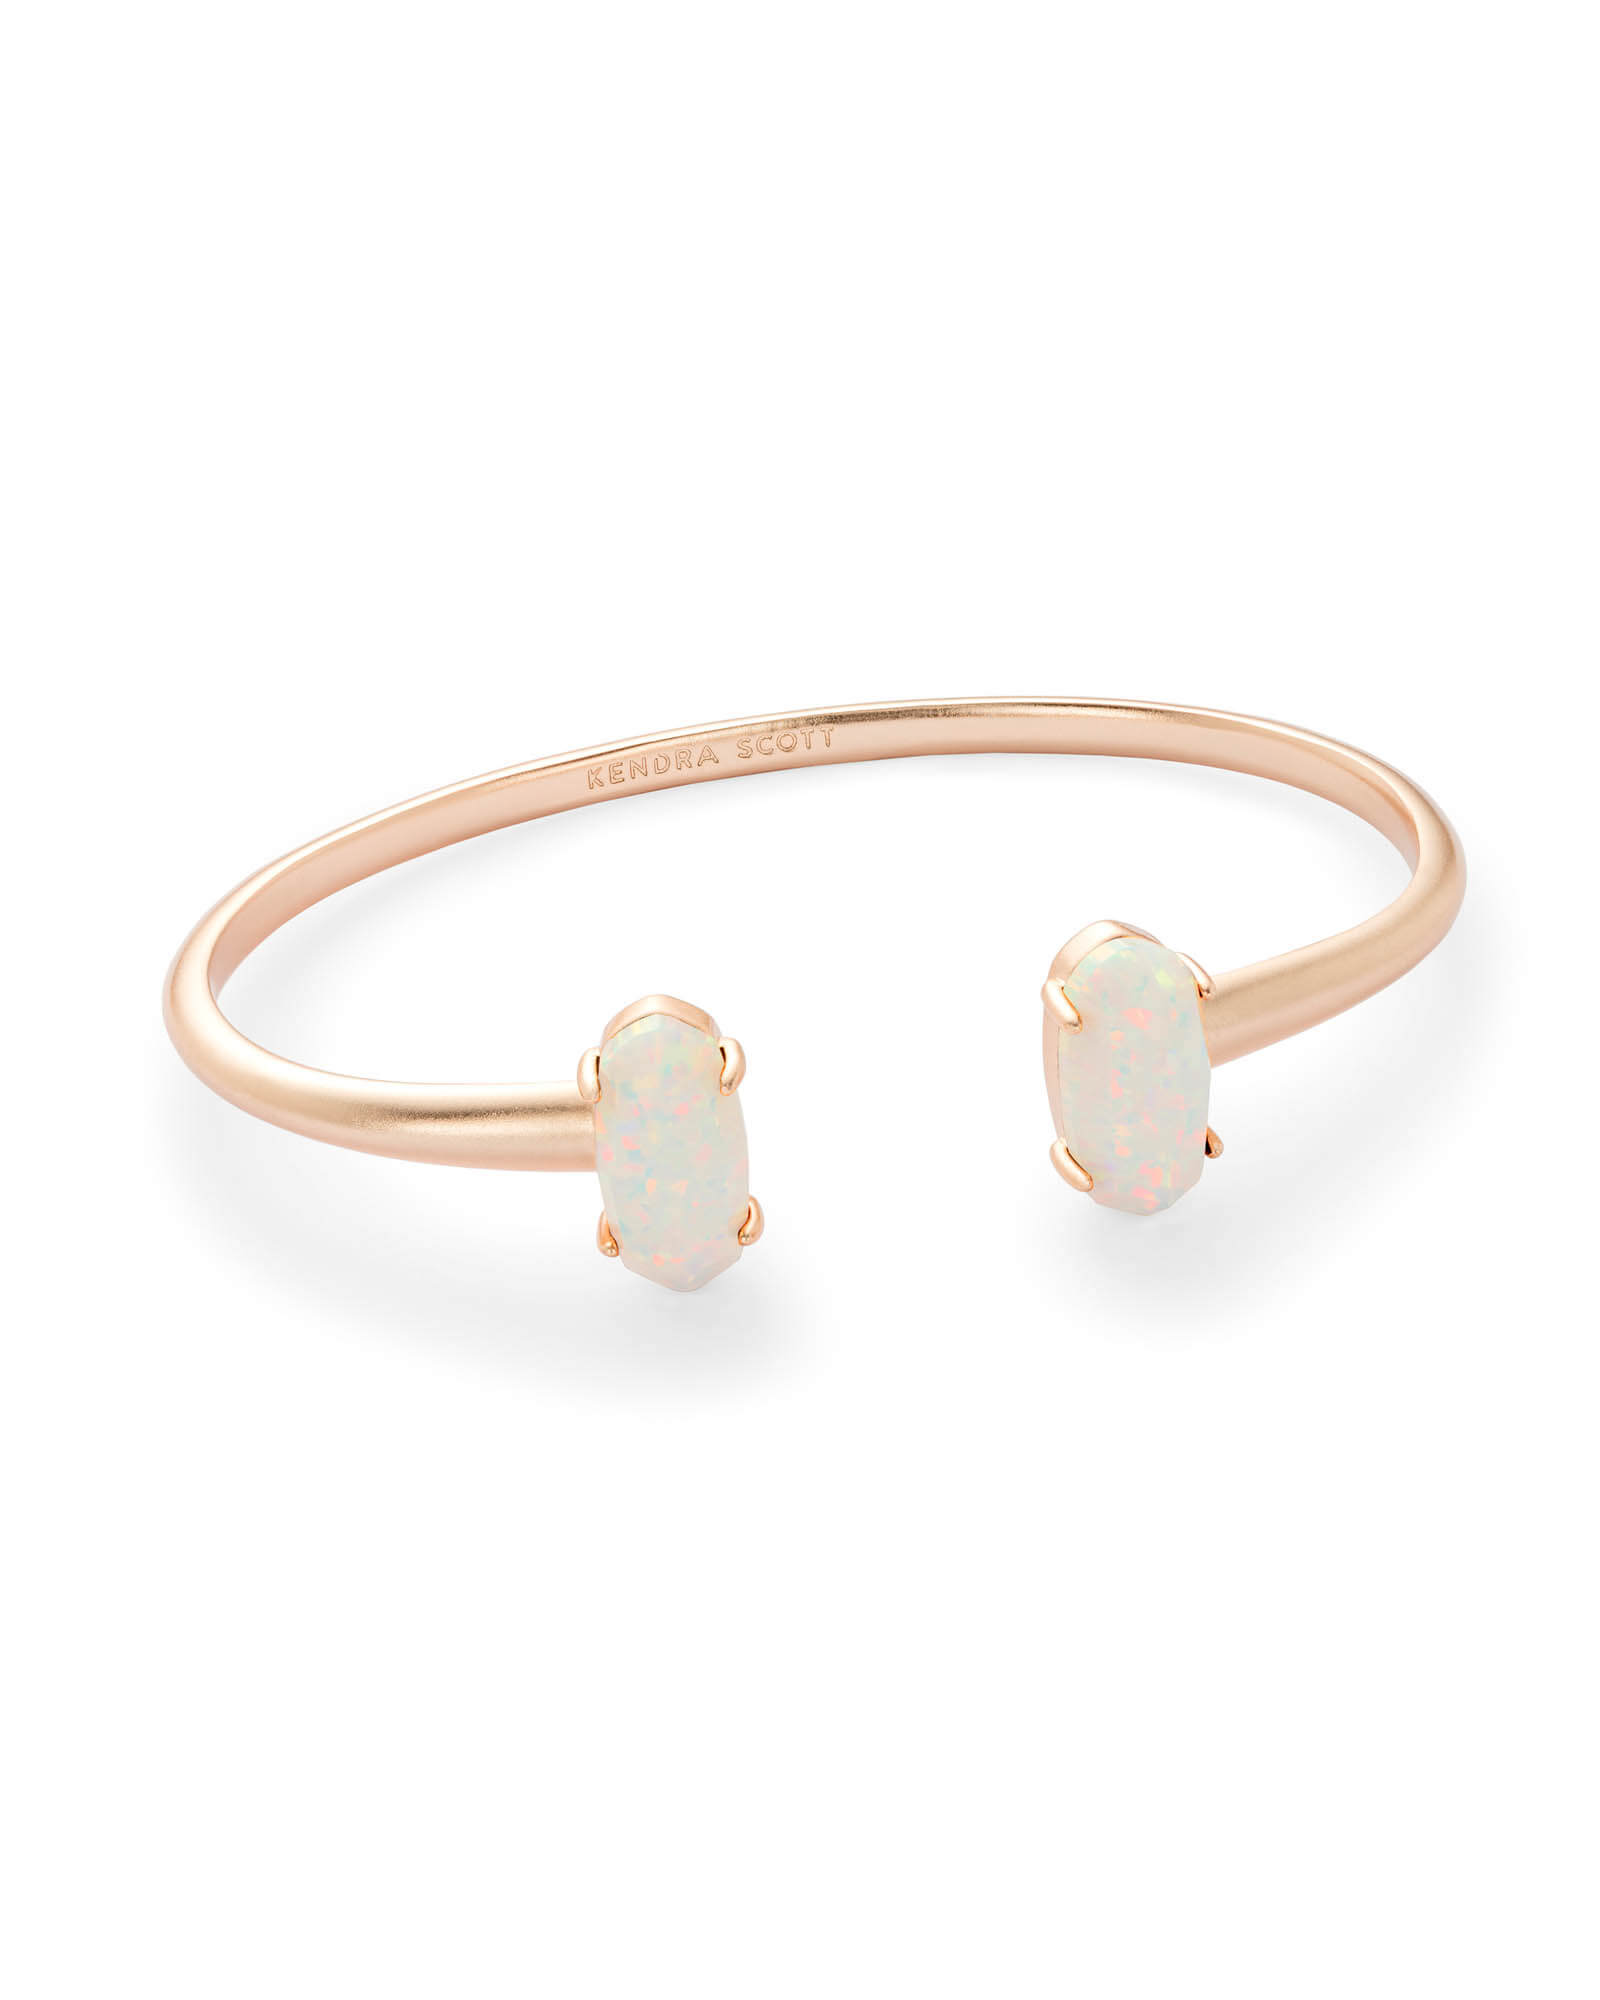 Edie Rose Gold Cuff Bracelet in White Kyocera Opal